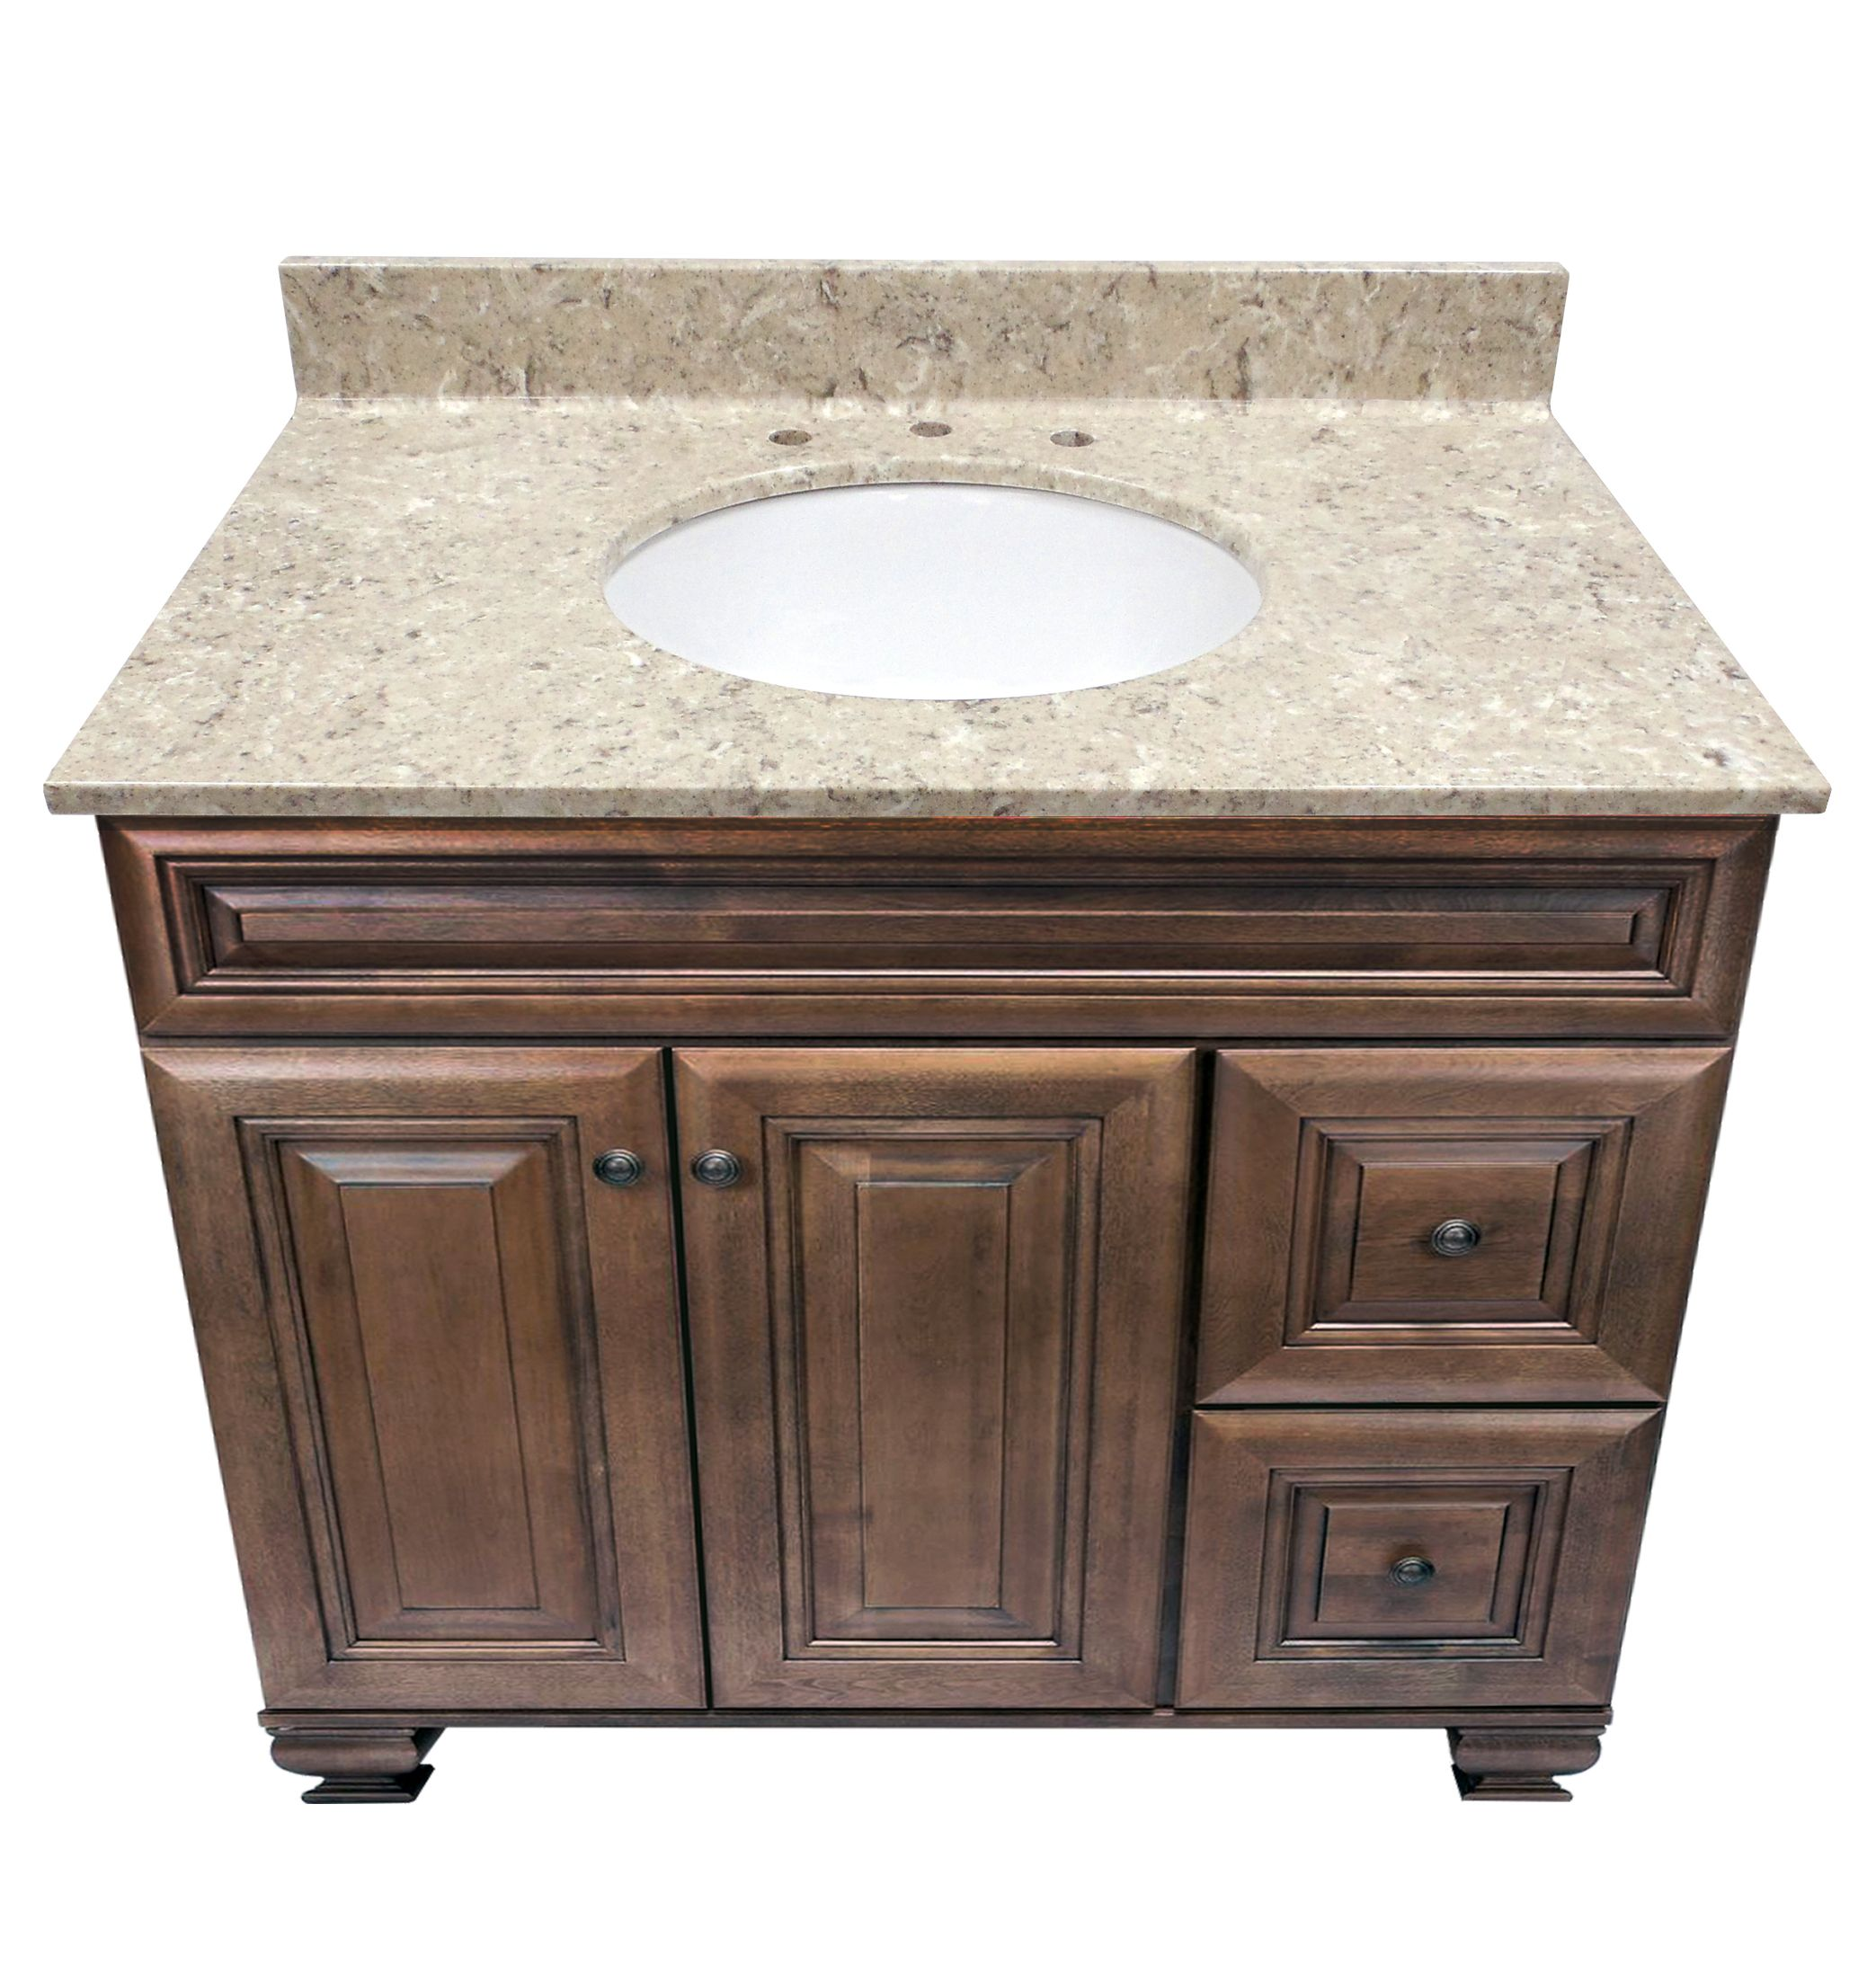 Us Marble Cultured Veined Granite Shown In River Bottom